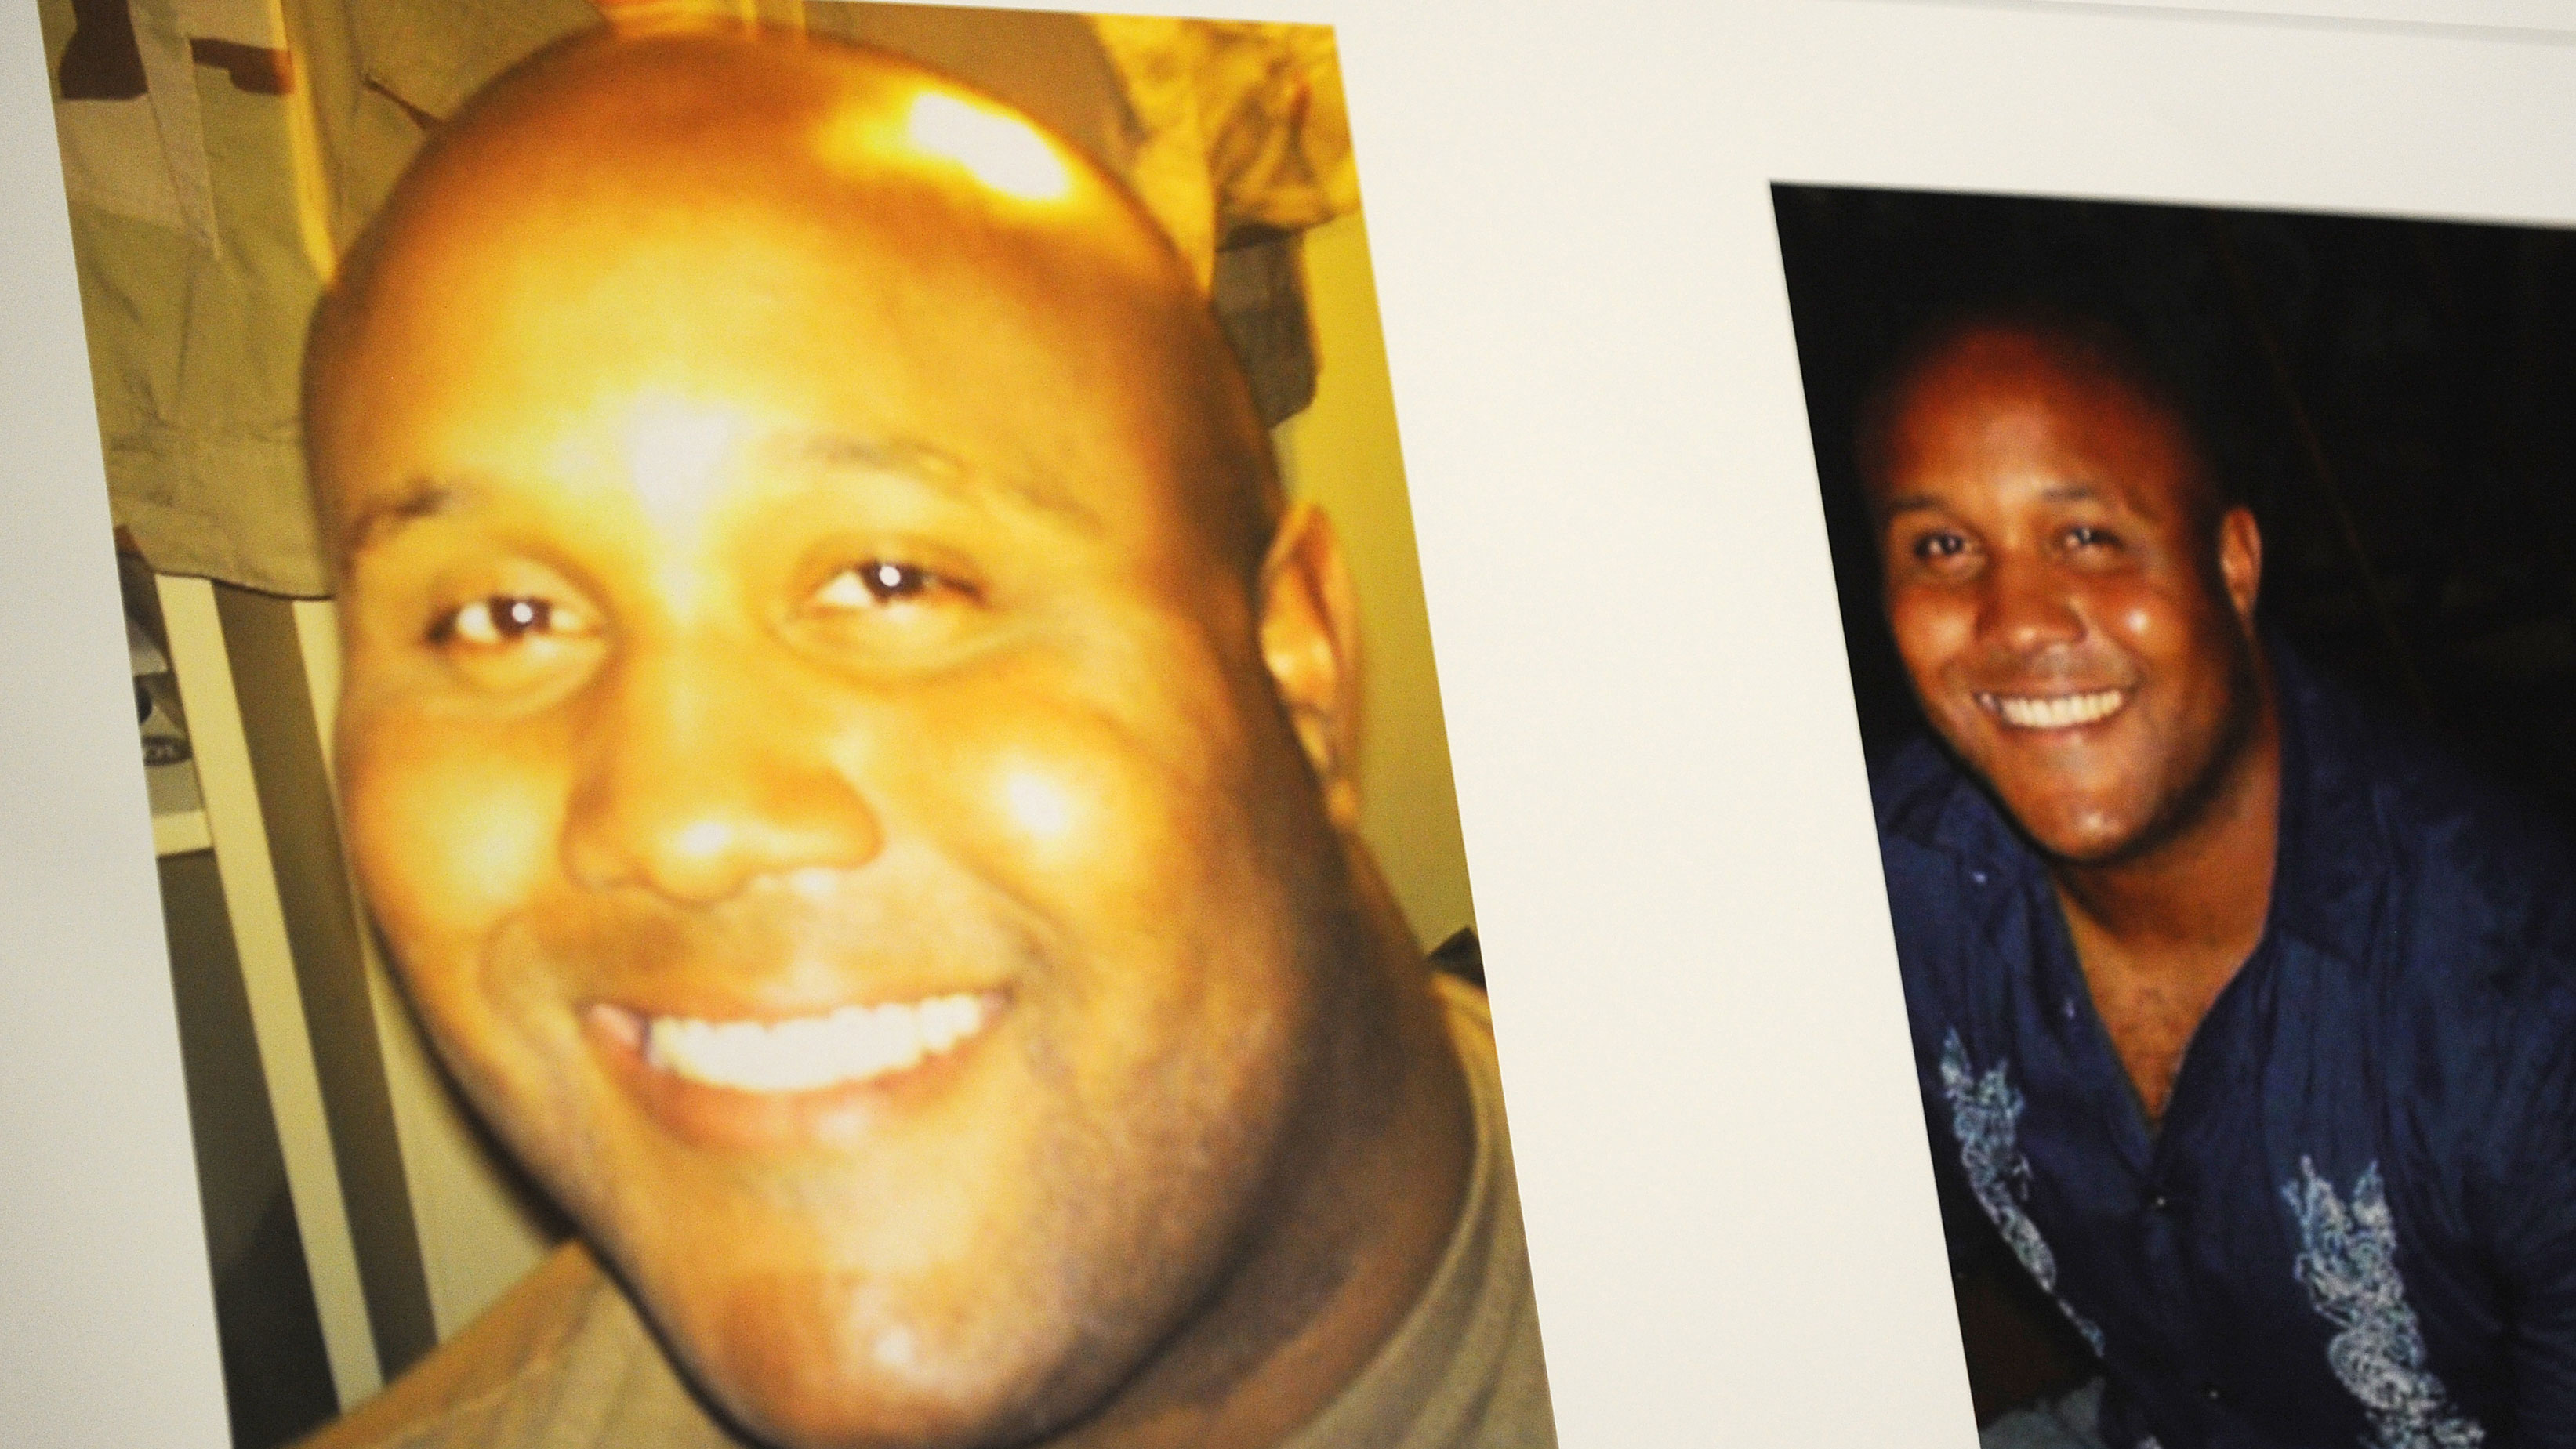 PHOTO:Images used during a press conference on the manhunt for ex-LAPD cop Christopher Dorner.